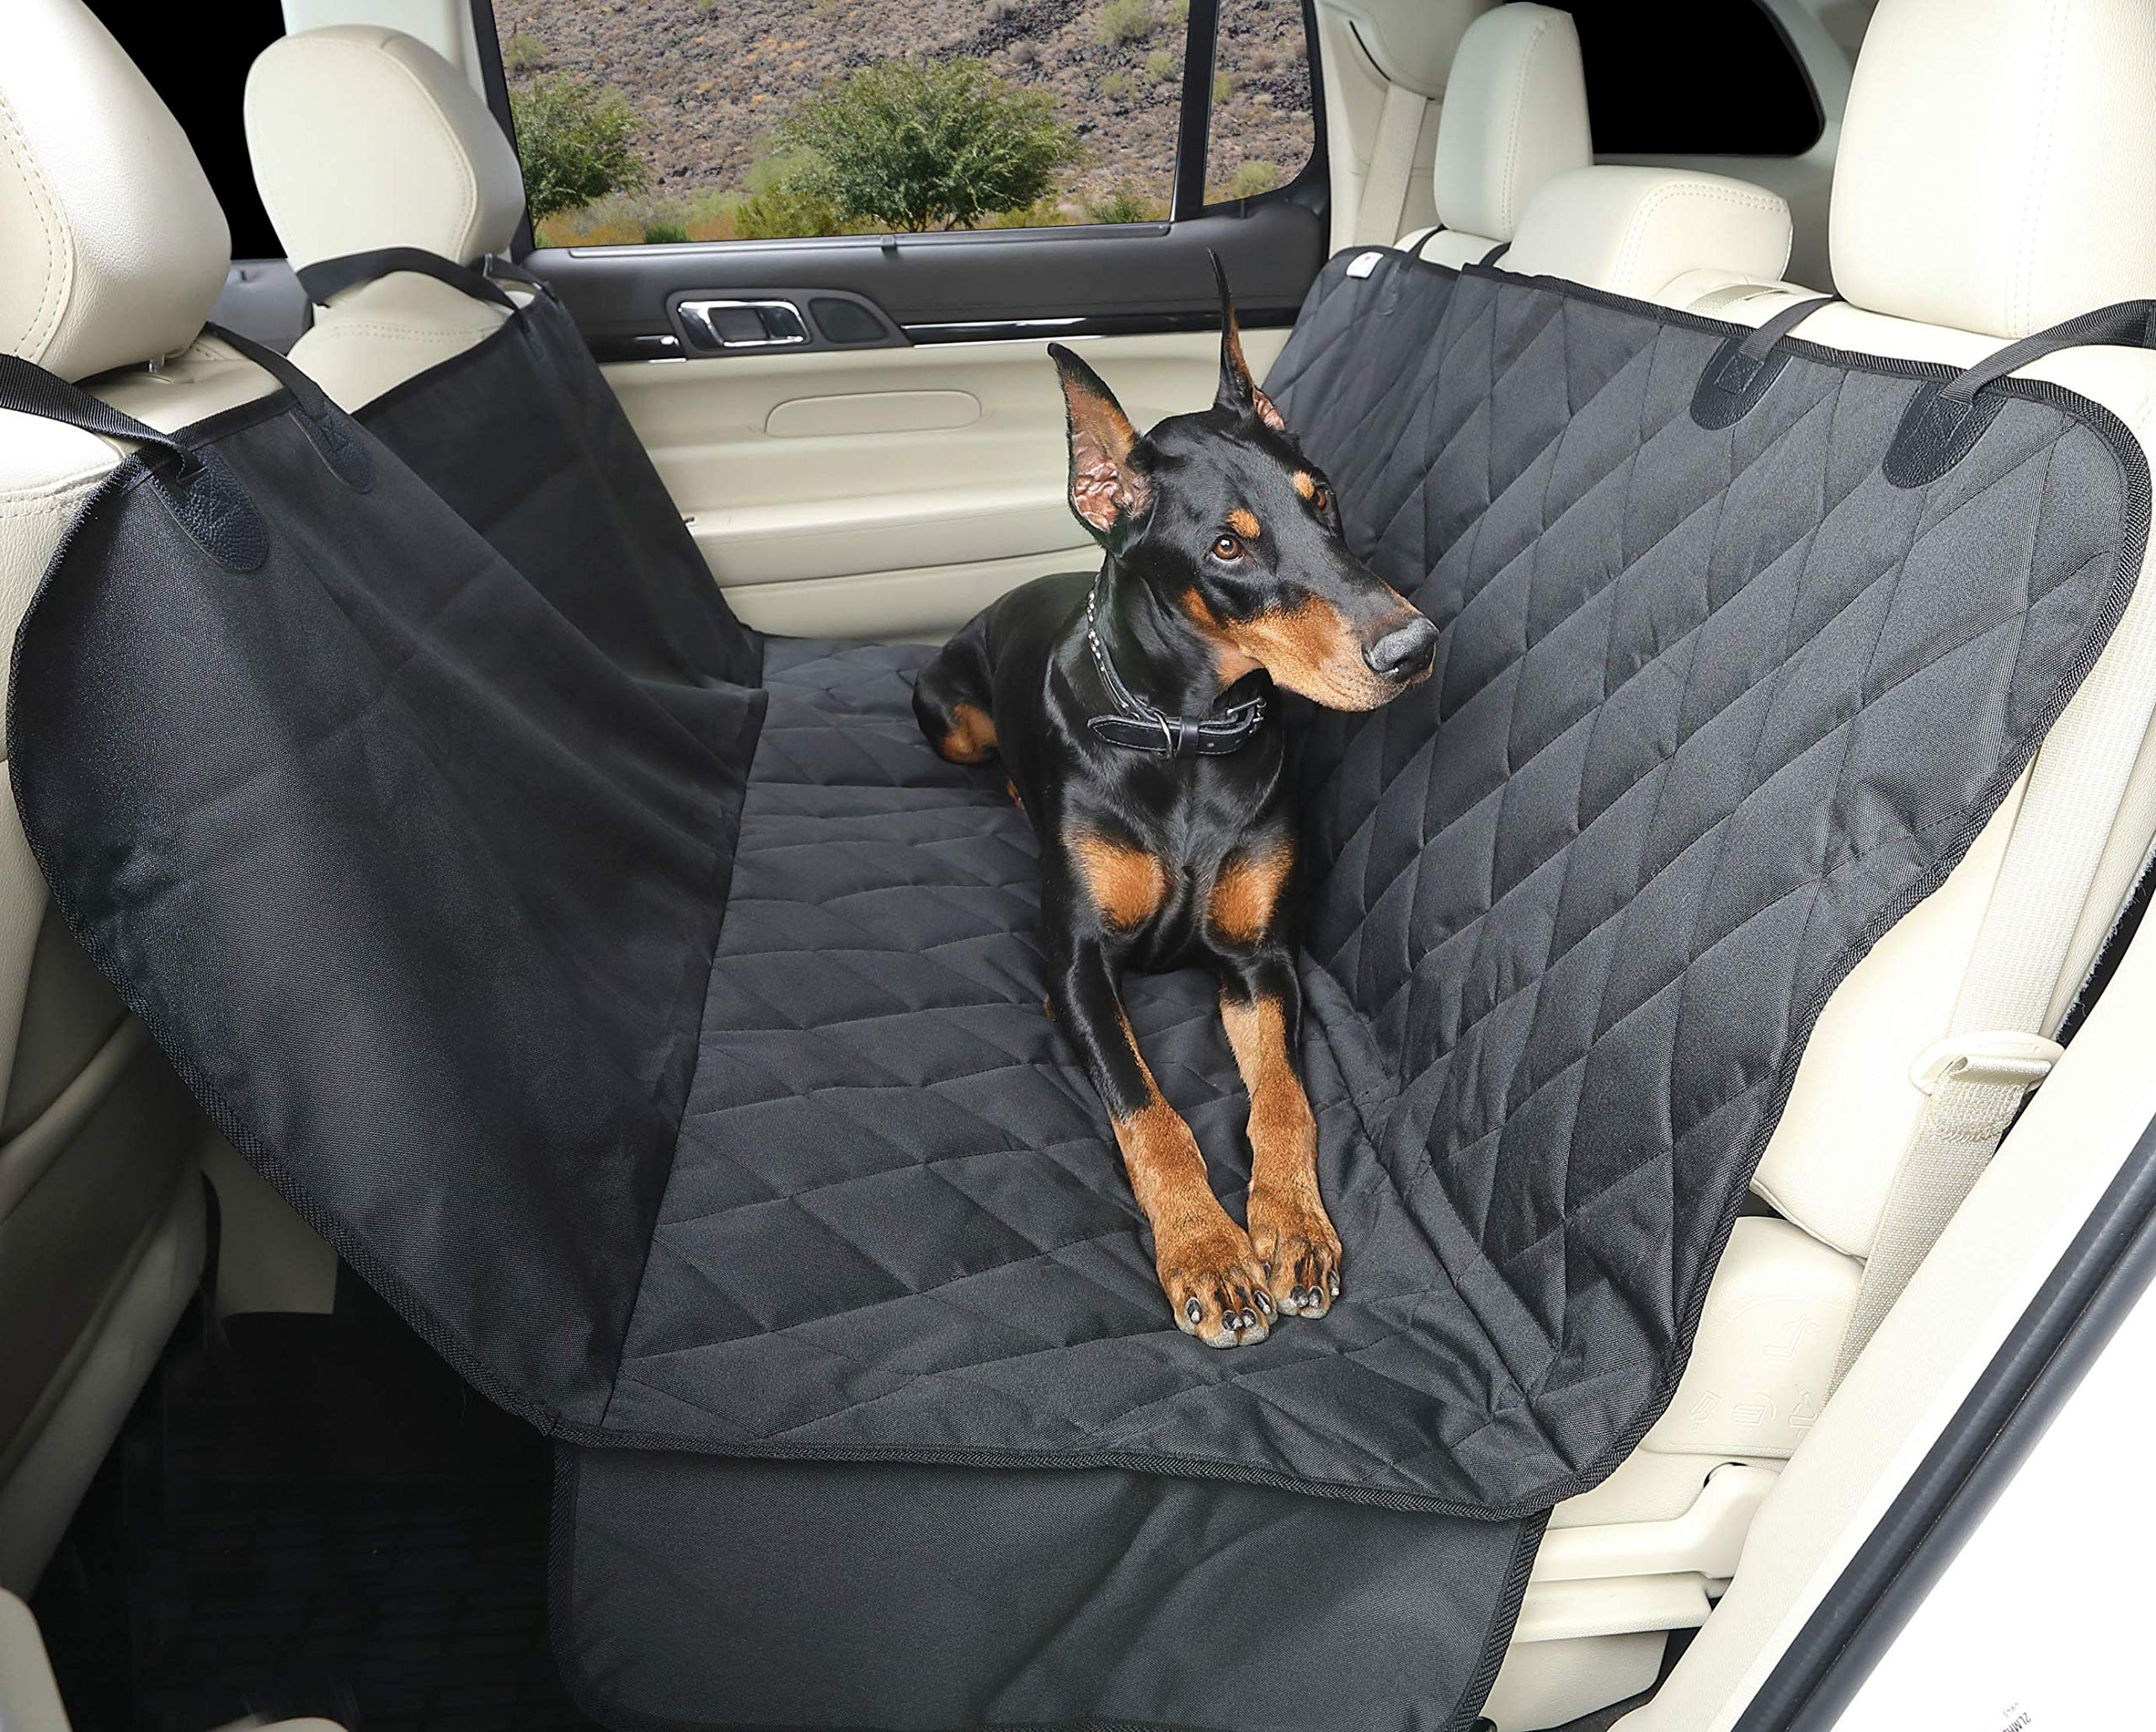 4Knines Dog Seat Cover with Hammock for Full Size Trucks and Large SUVs - Black Extra Large - USA Based Company by 4Knines (Image #3)